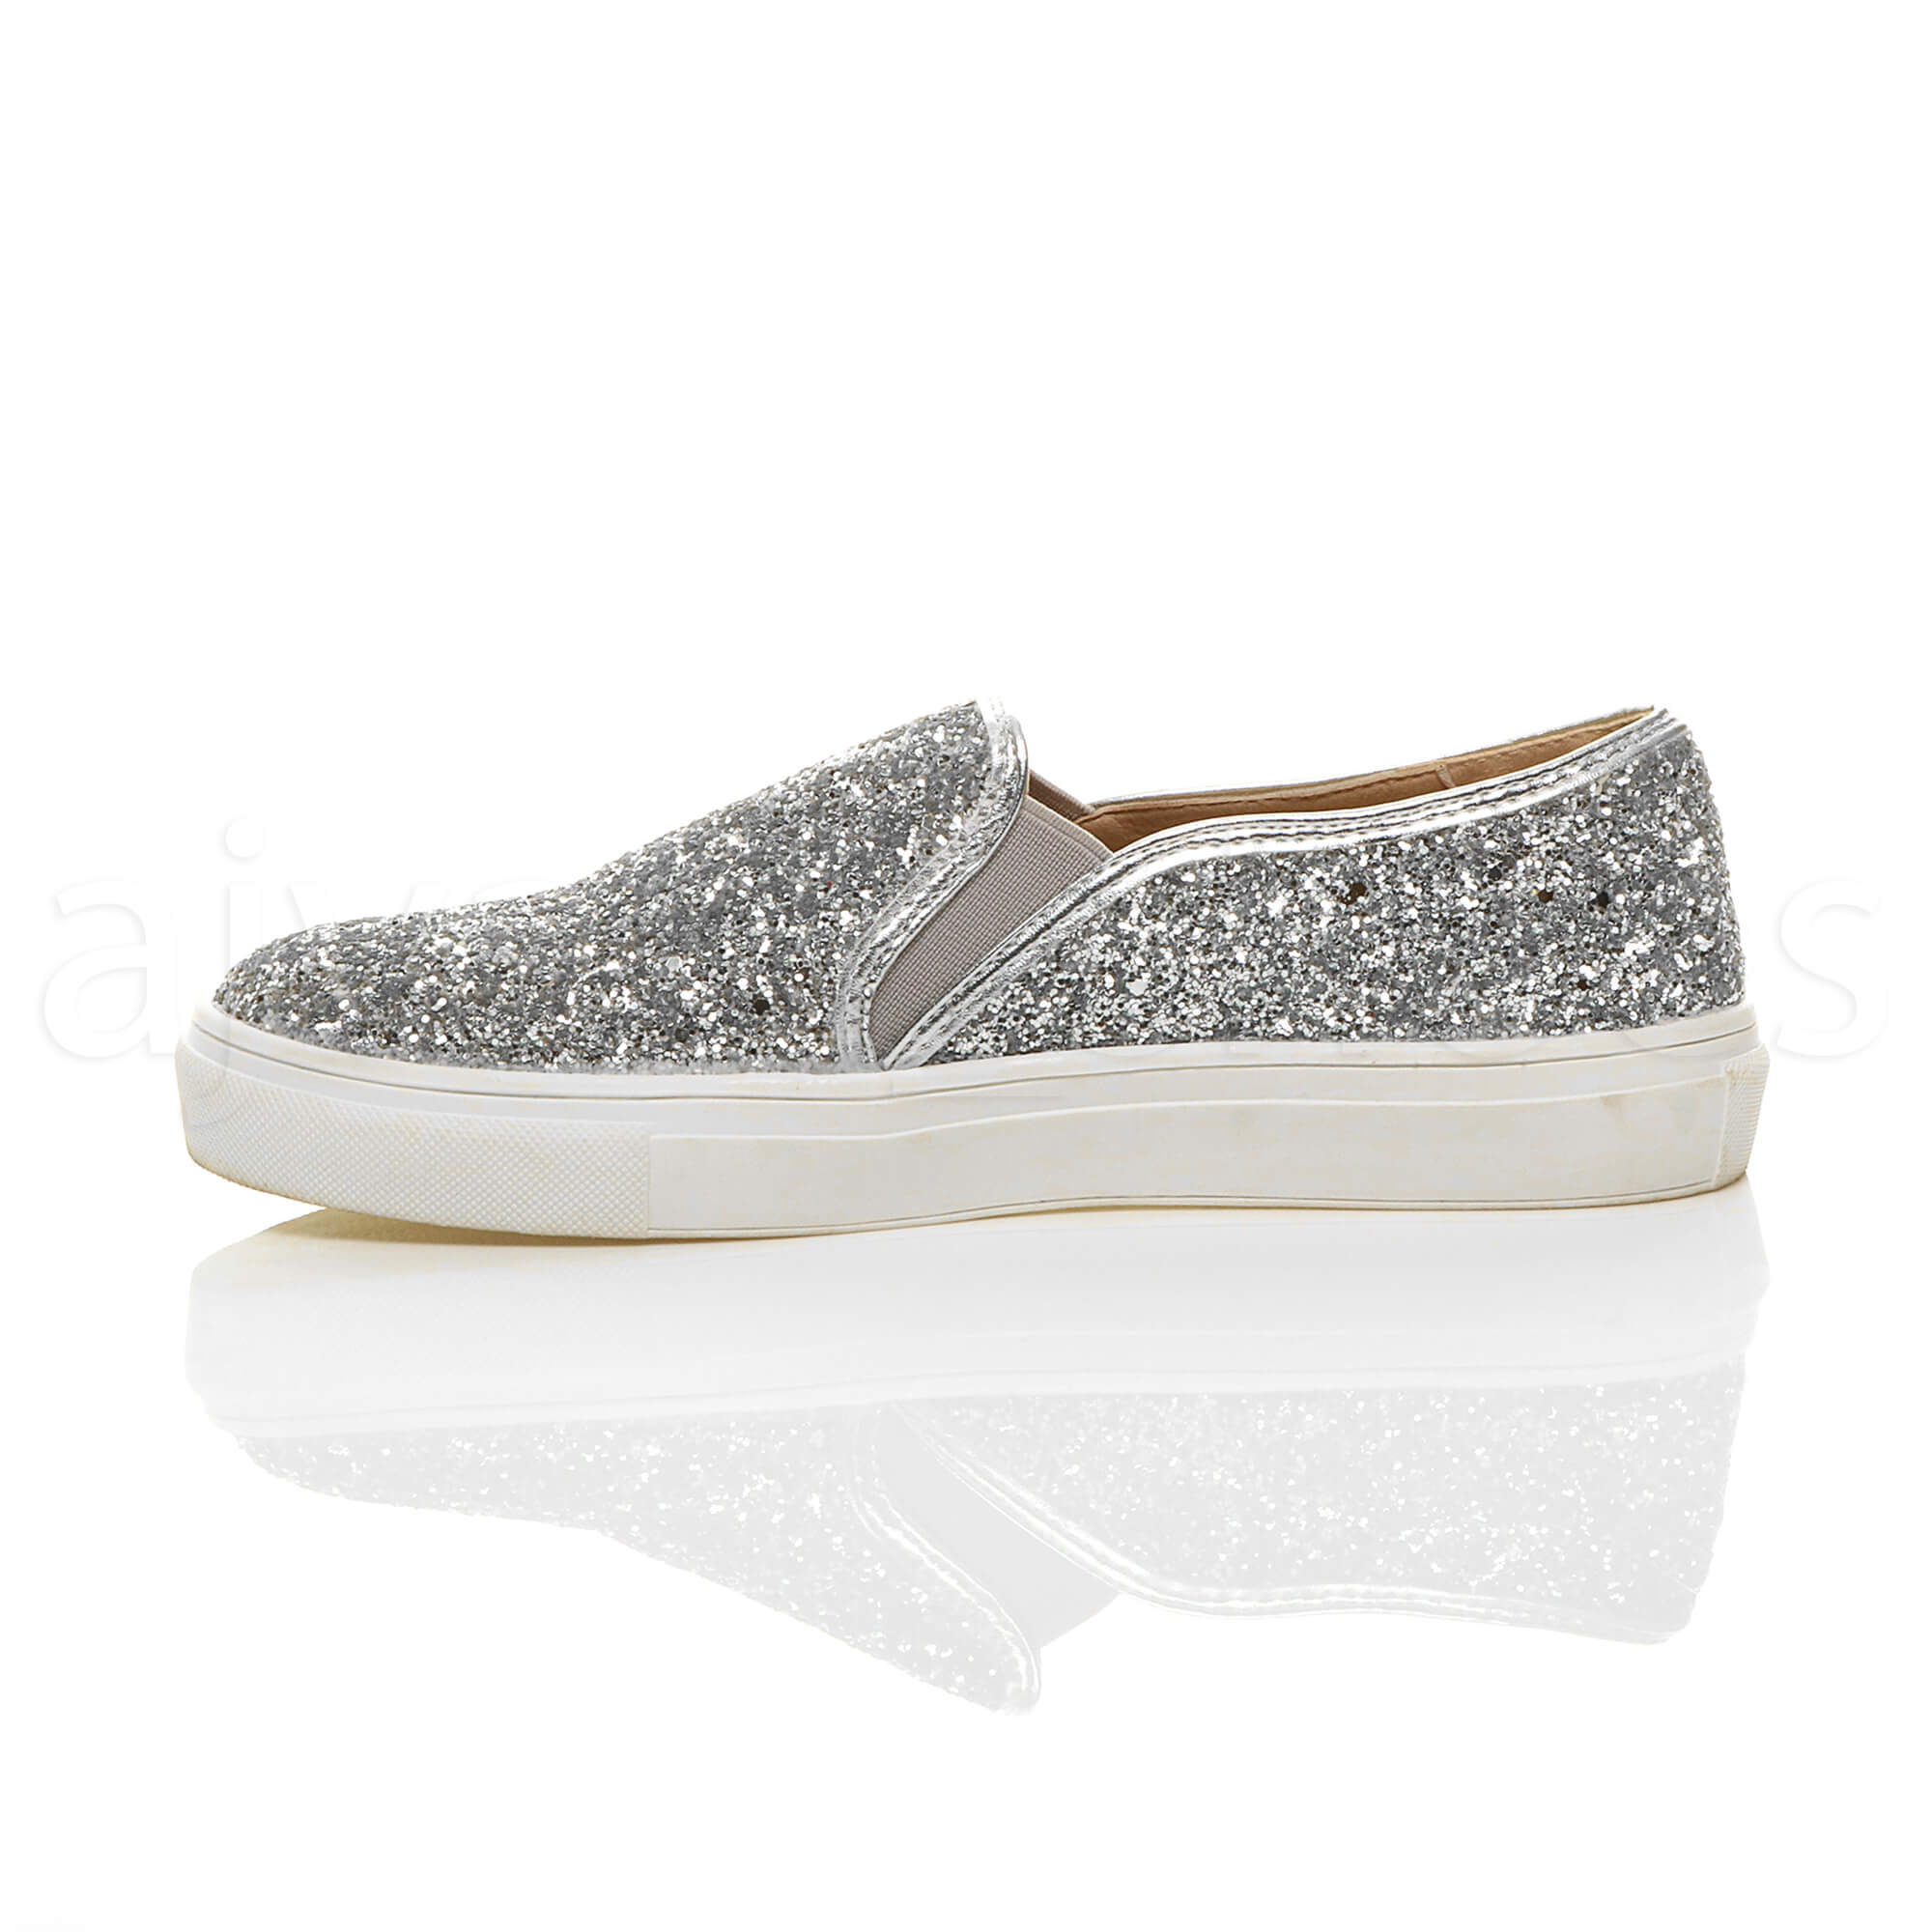 Silver Glitter Shoes Uk